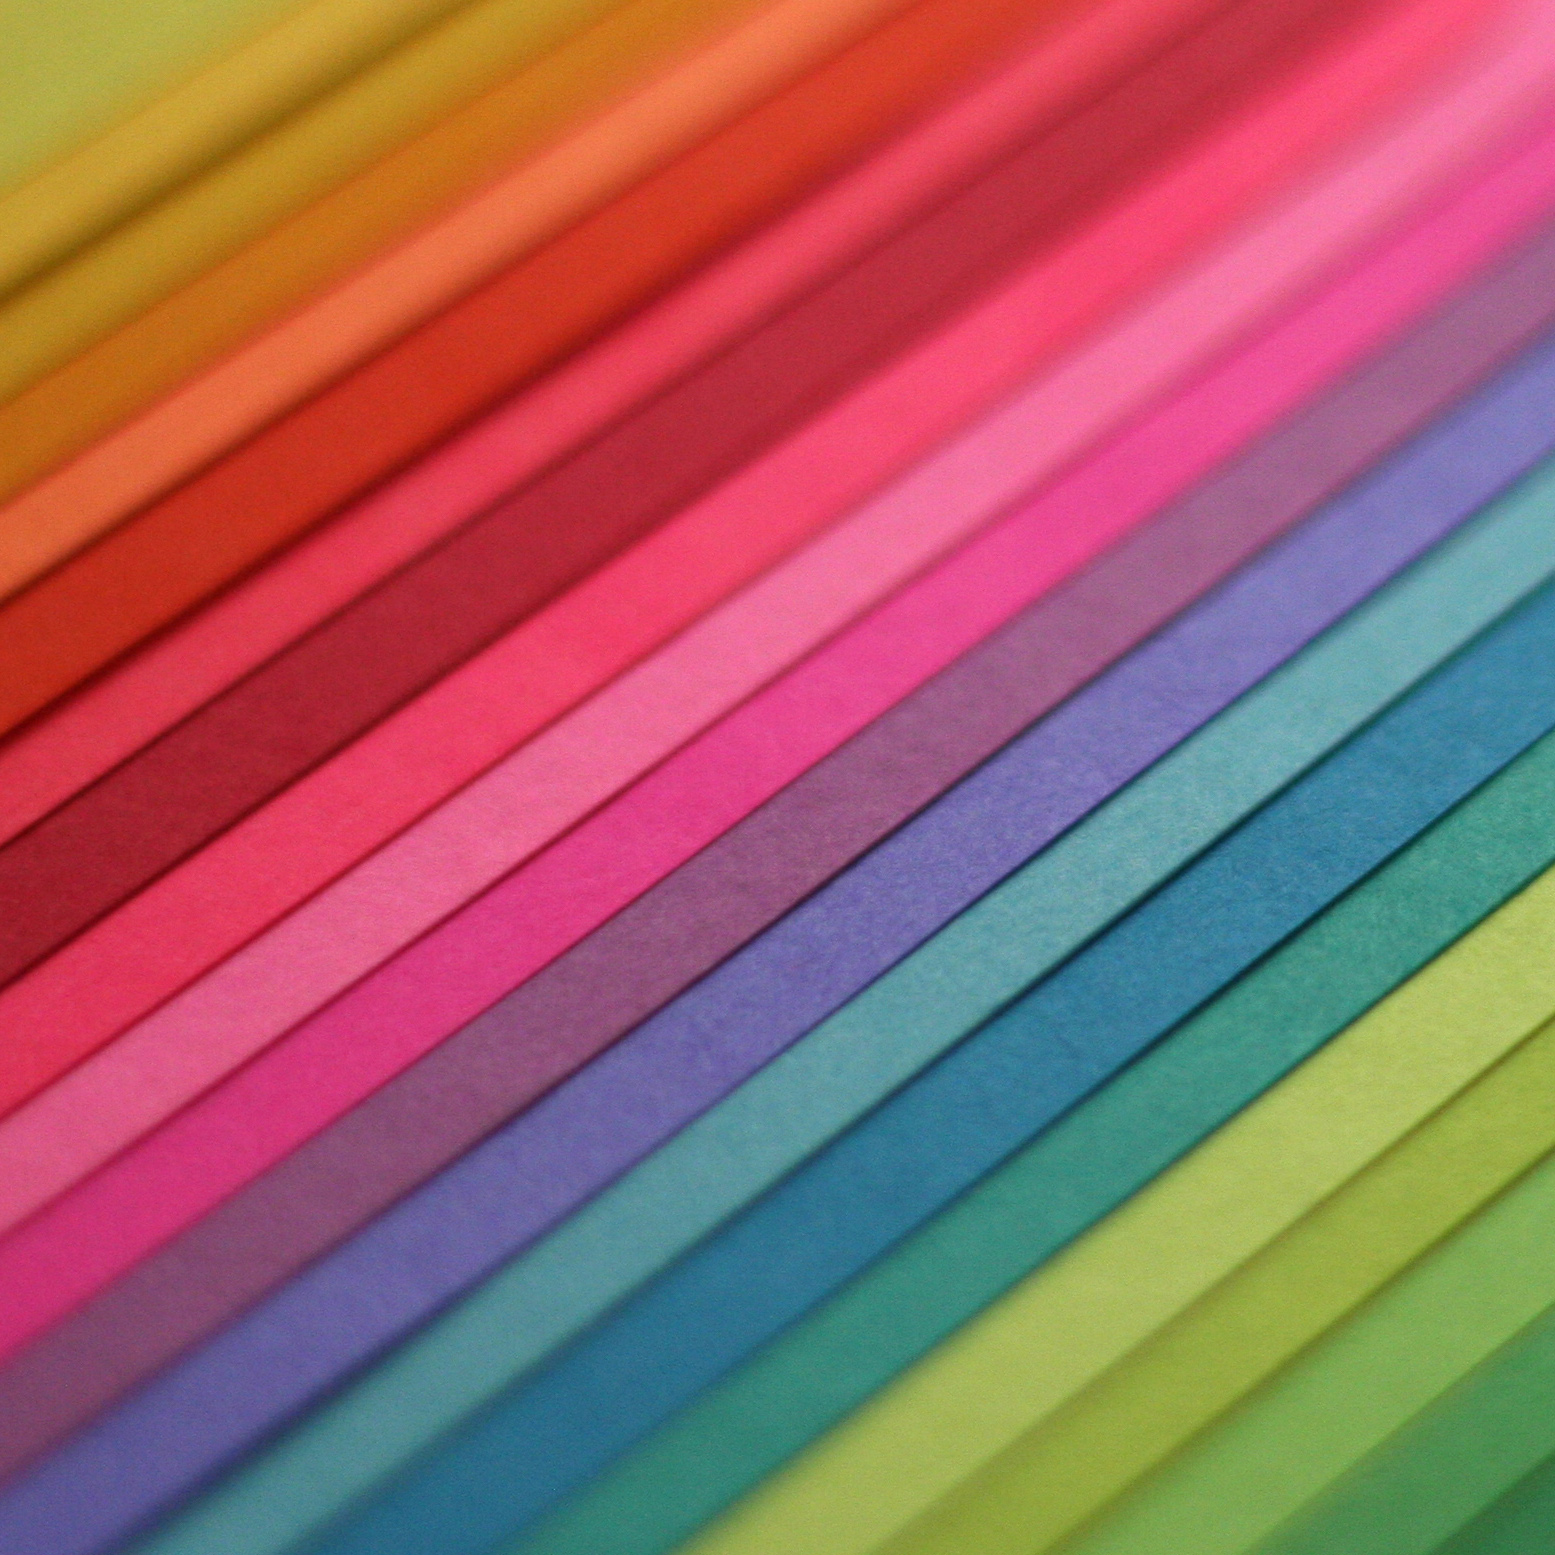 Special Papers and materials   We offer translucent, pearlescent, embossed and synthetic papers for special projects, as well as exotics such as seed-impregnated papers and papers made from algae, sugar cane, animal dung and hemp. We can also source special materials for covers, folders, binders and book bindings. Let us know what you're after, and if it exists DRUK will source it.